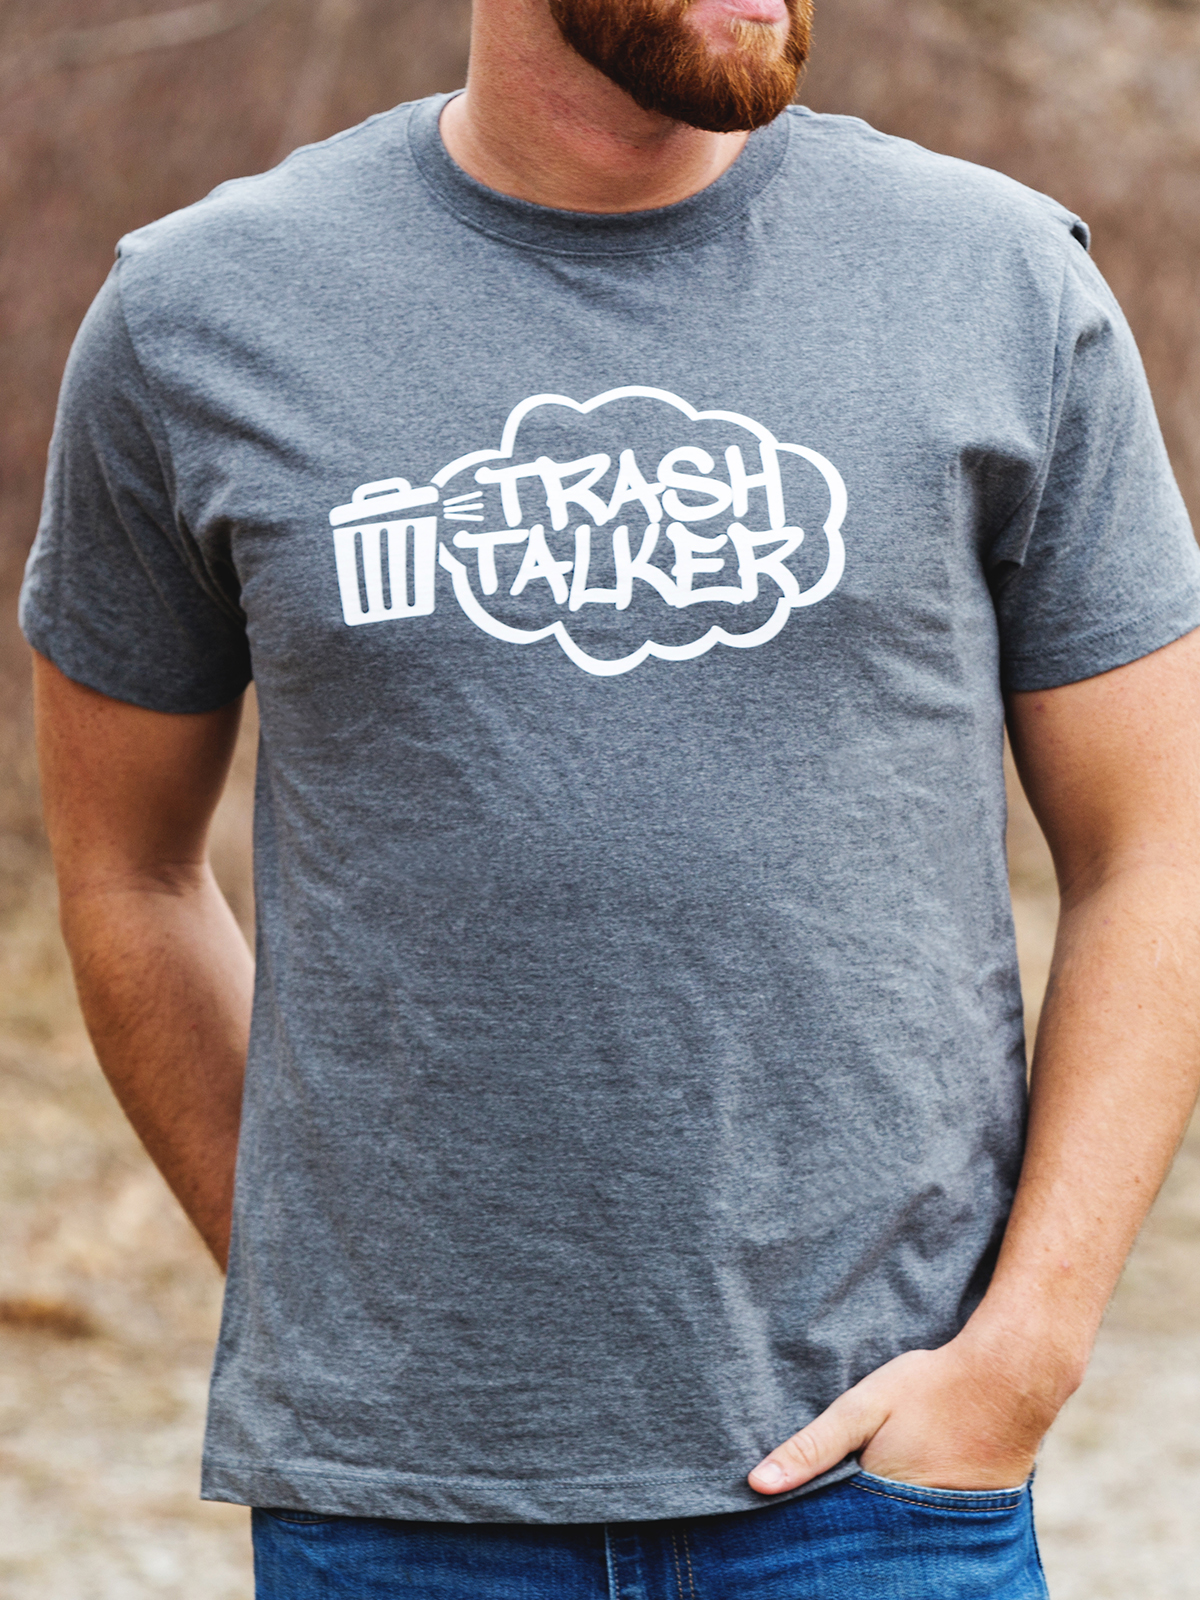 TRASH TALKER T-SHIRT